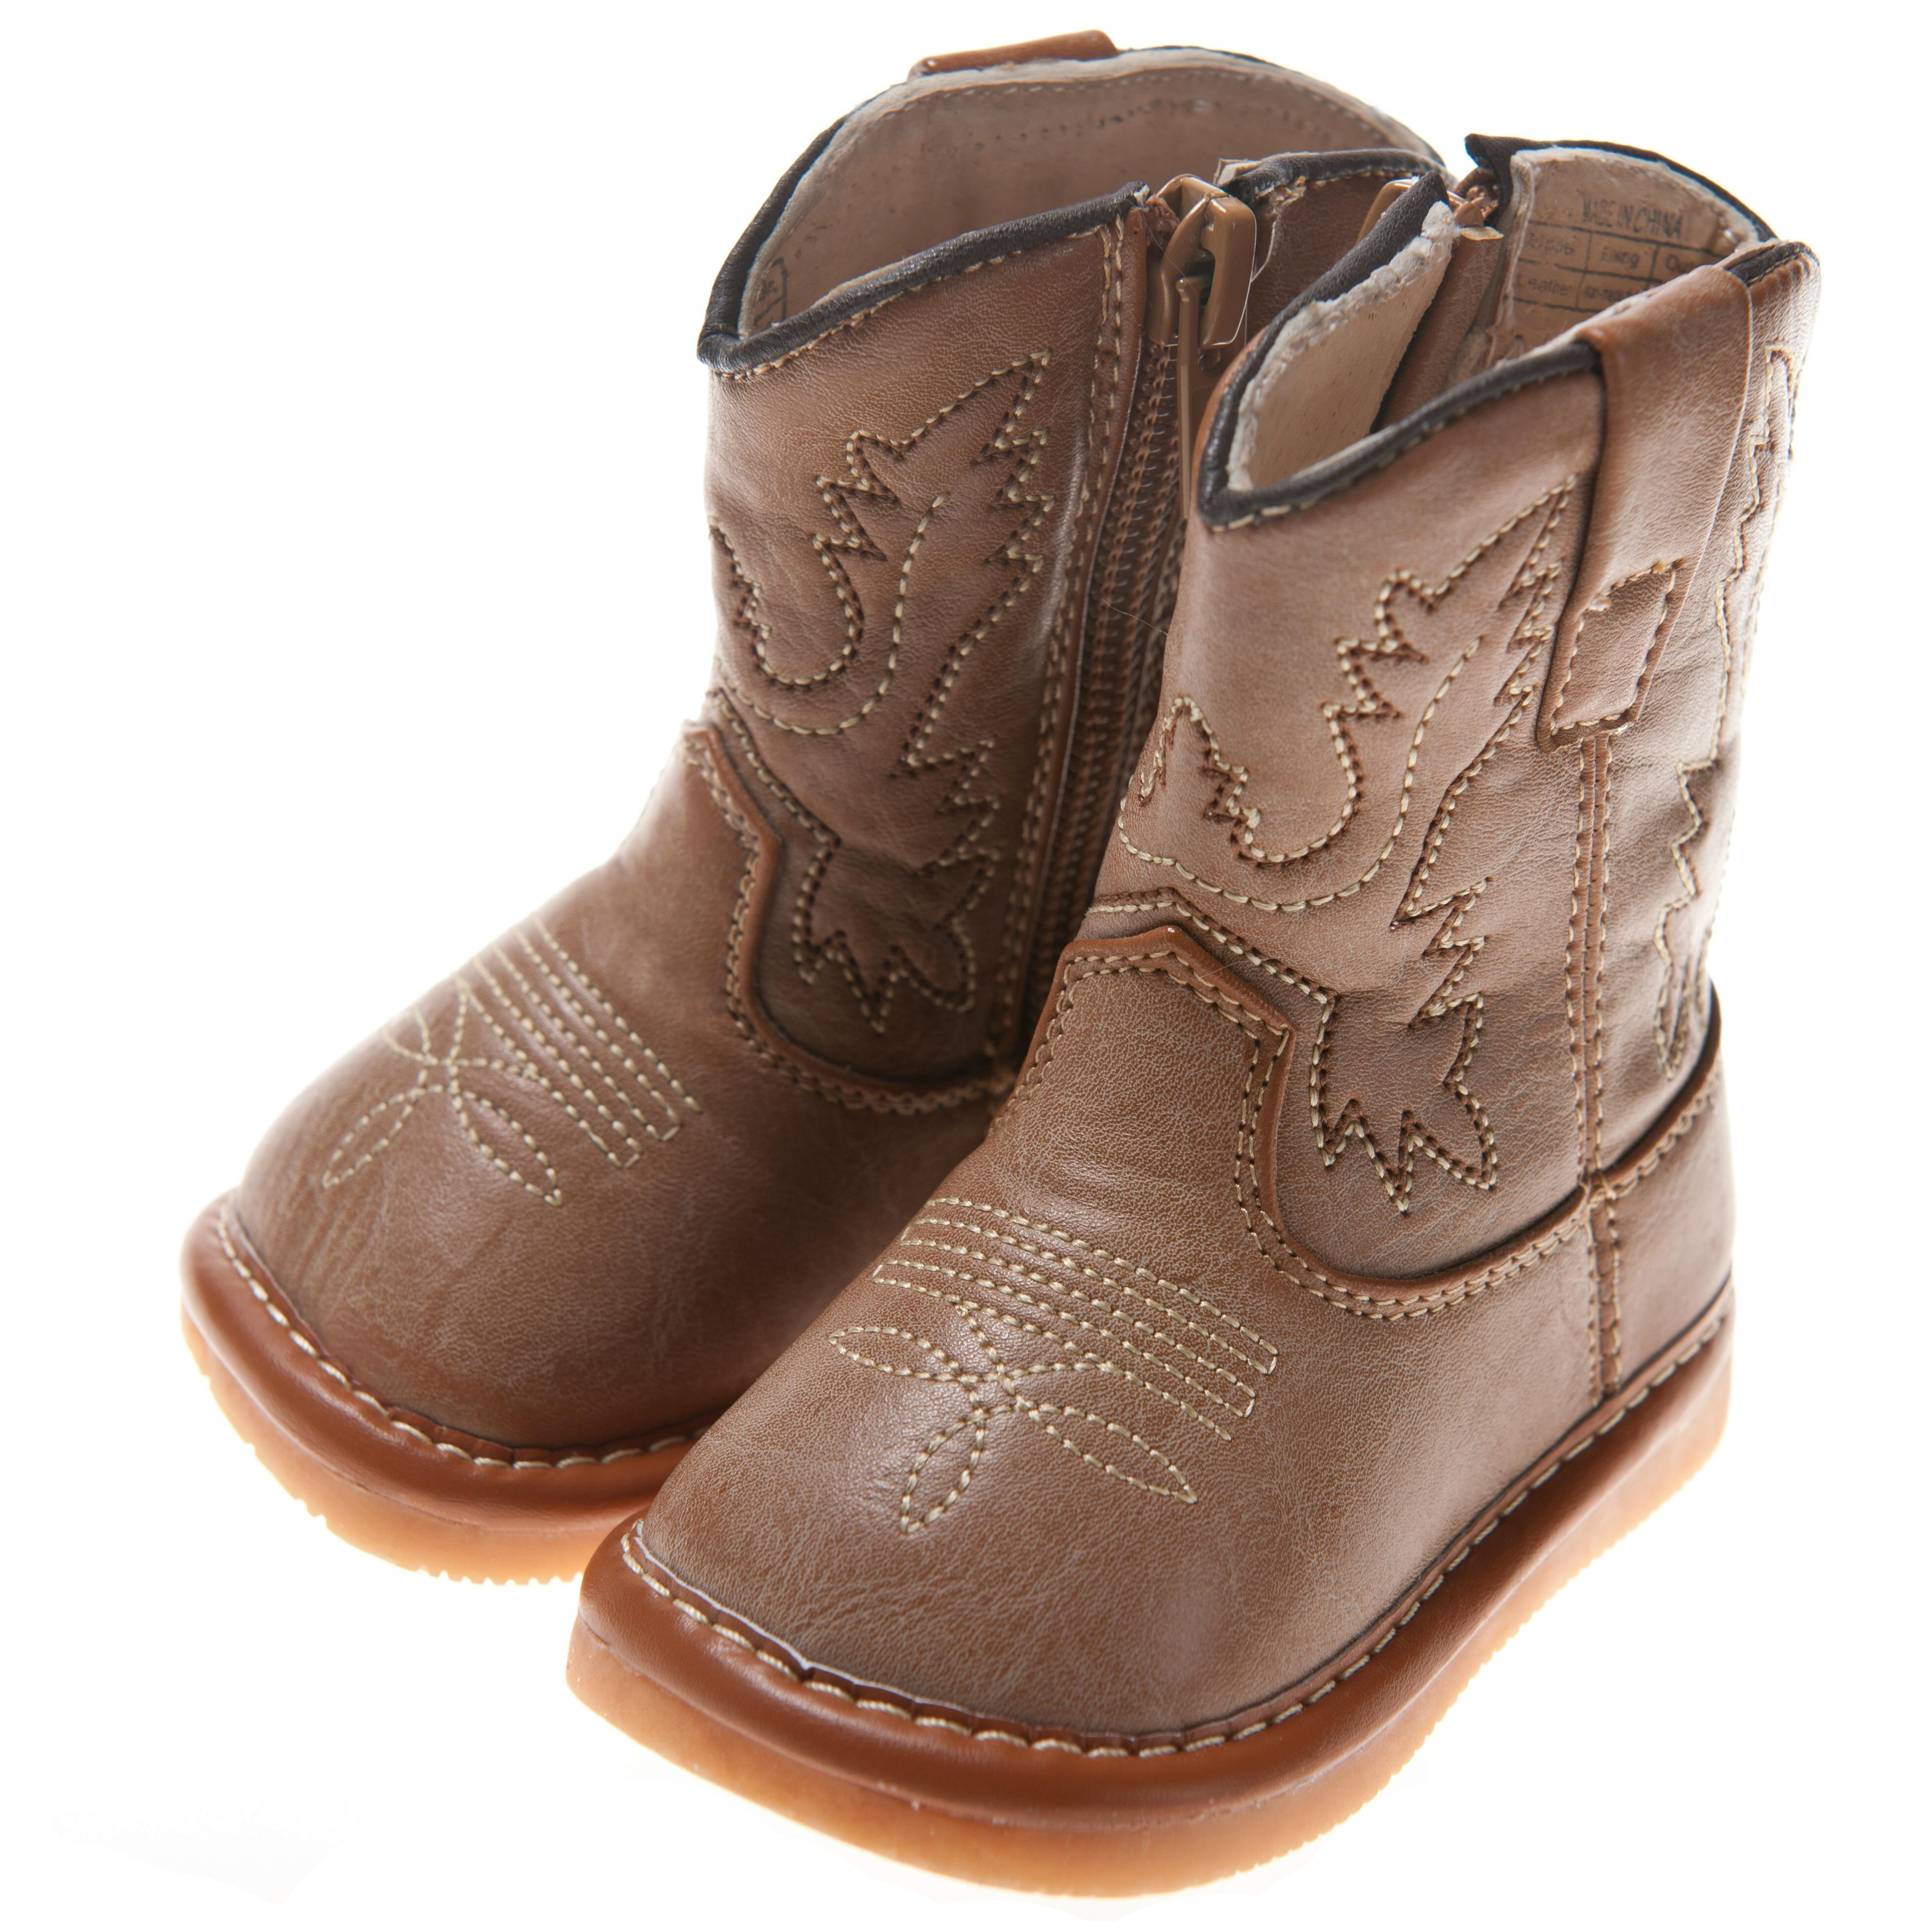 cowboy squeaky boots toddler size1 7 ebay